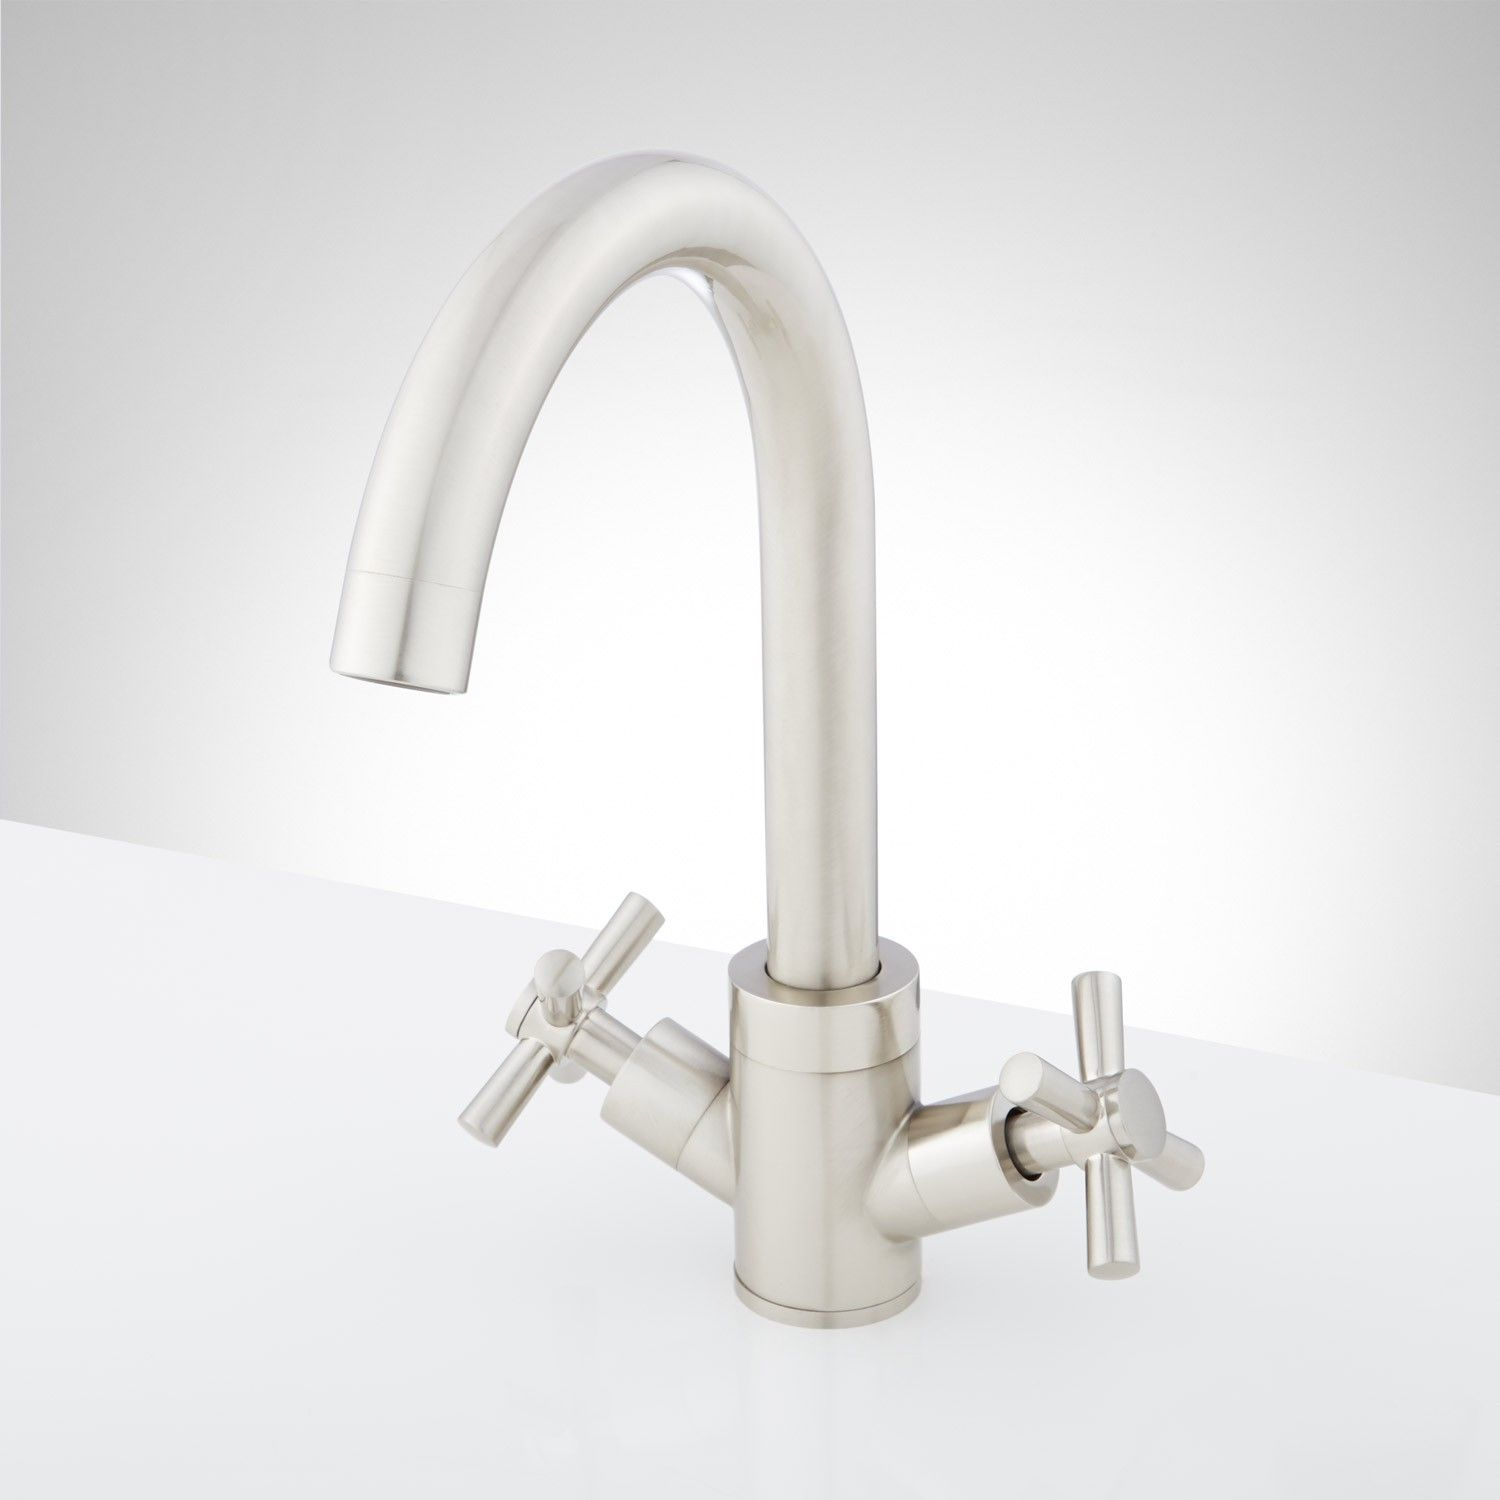 Arellano Single Hole Bathroom Faucet Faucet Brushed Nickel And